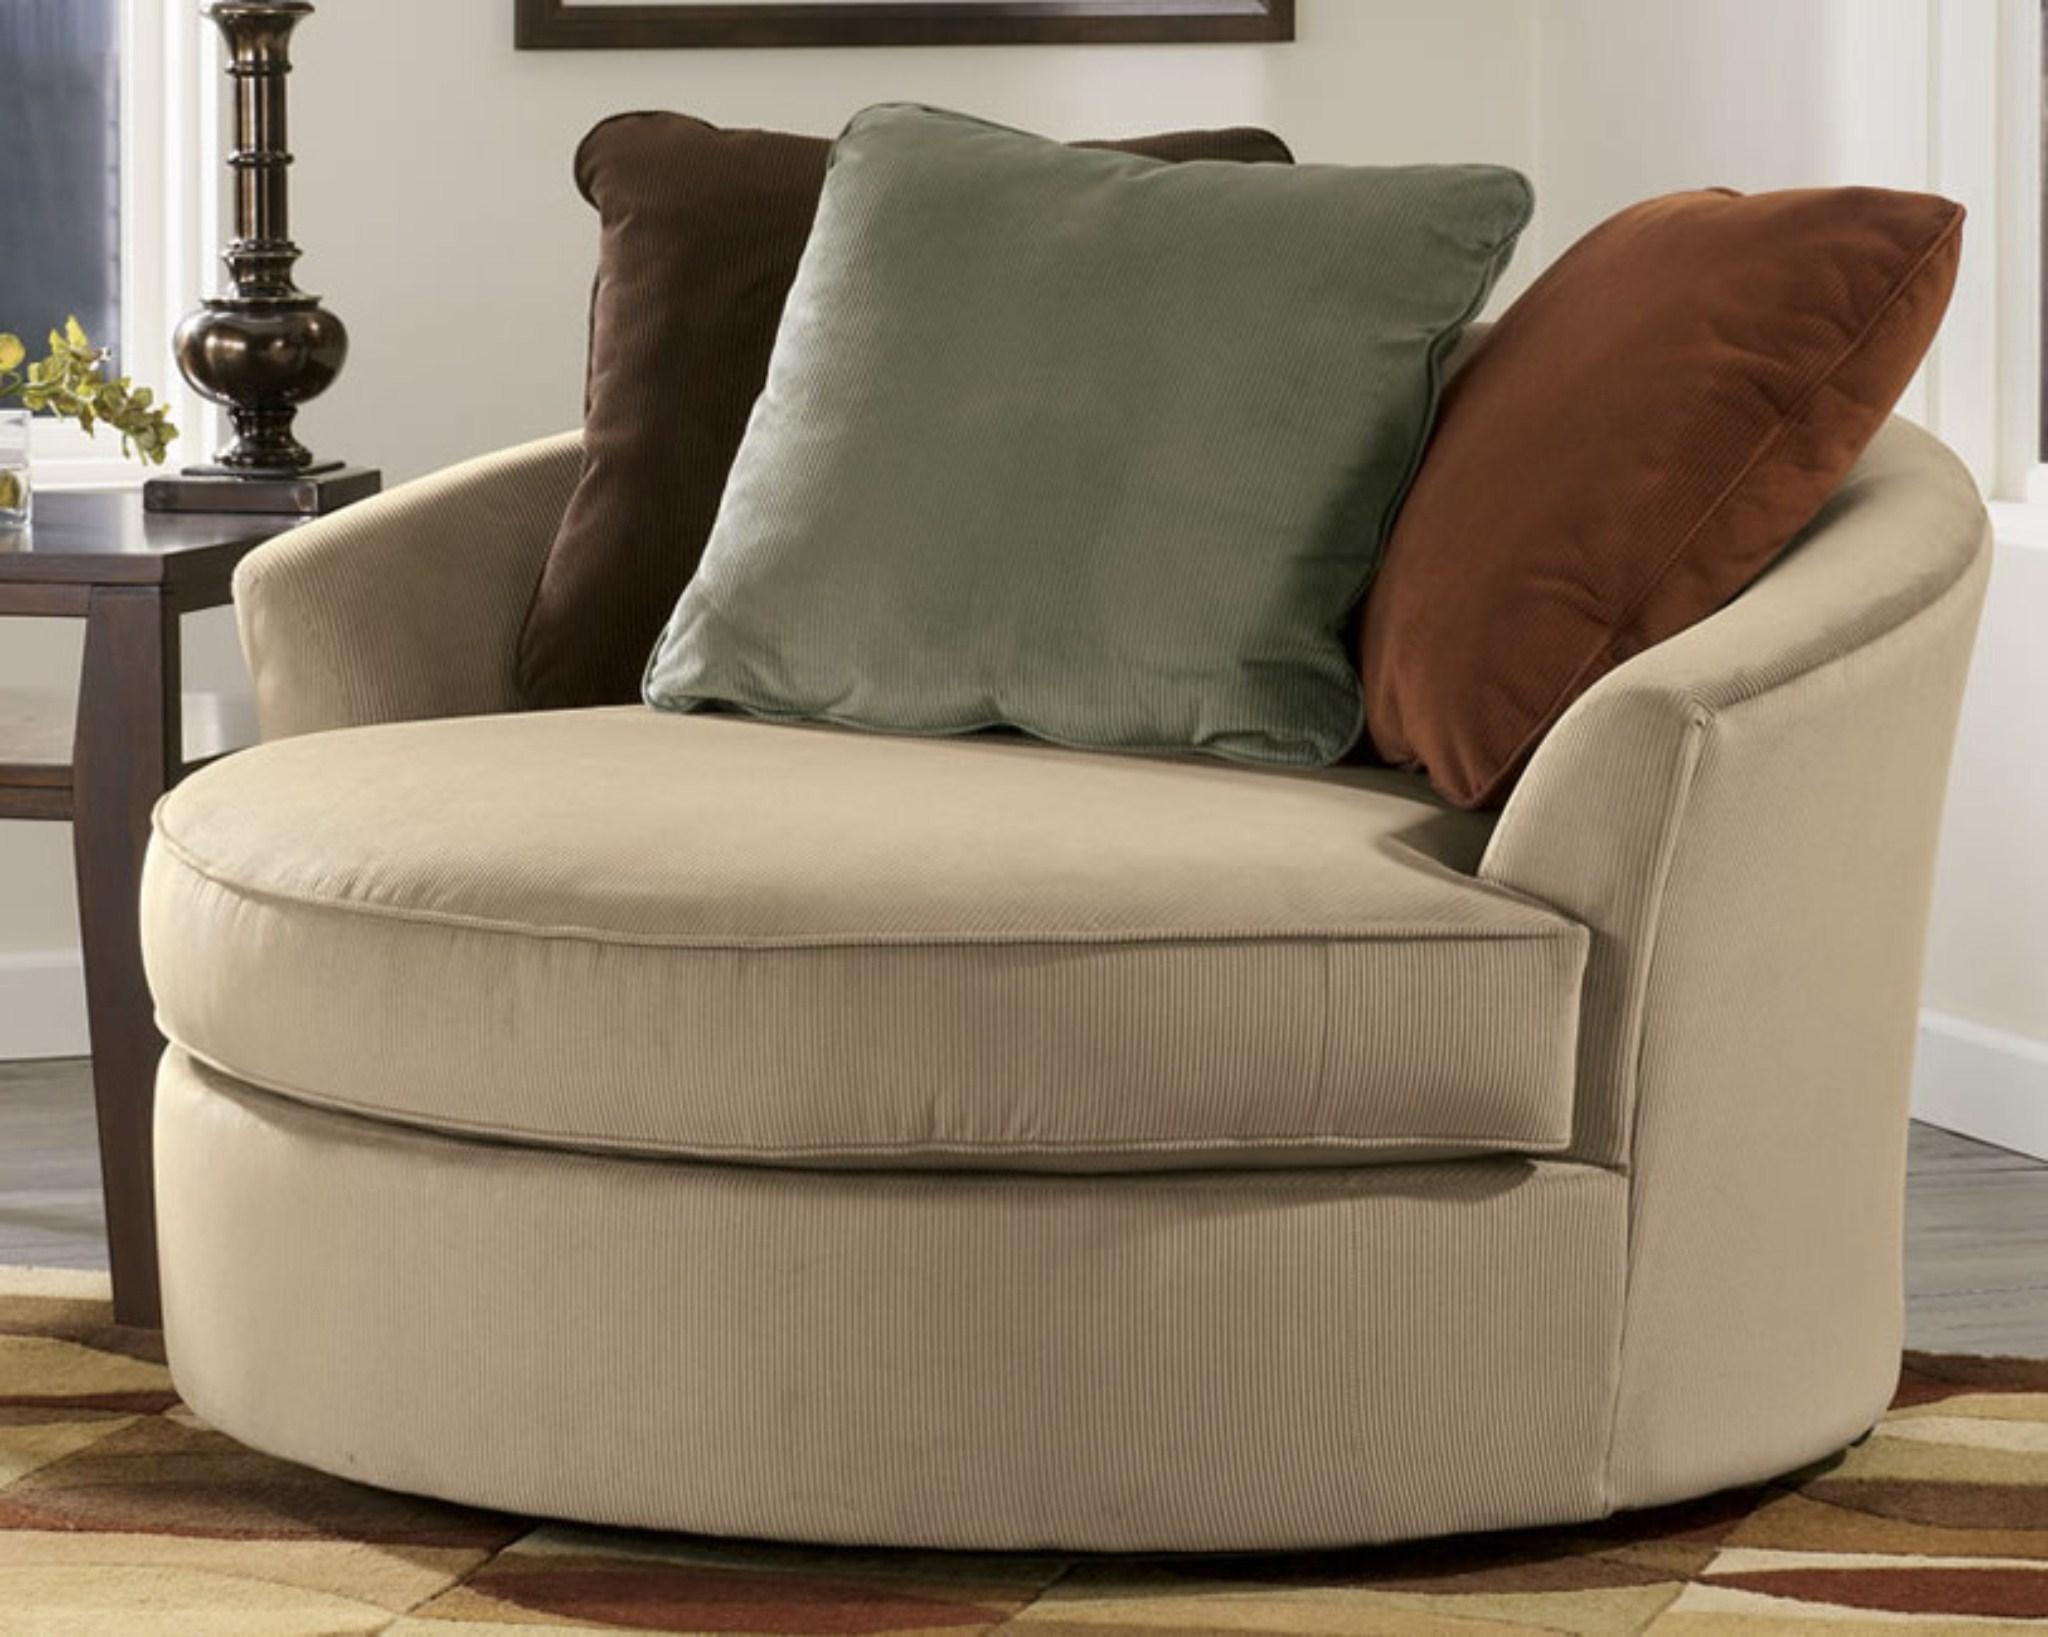 Round Swivel Sofa Chair – Leather Sectional Sofa Intended For Round Swivel Sofa Chairs (Photo 2 of 20)